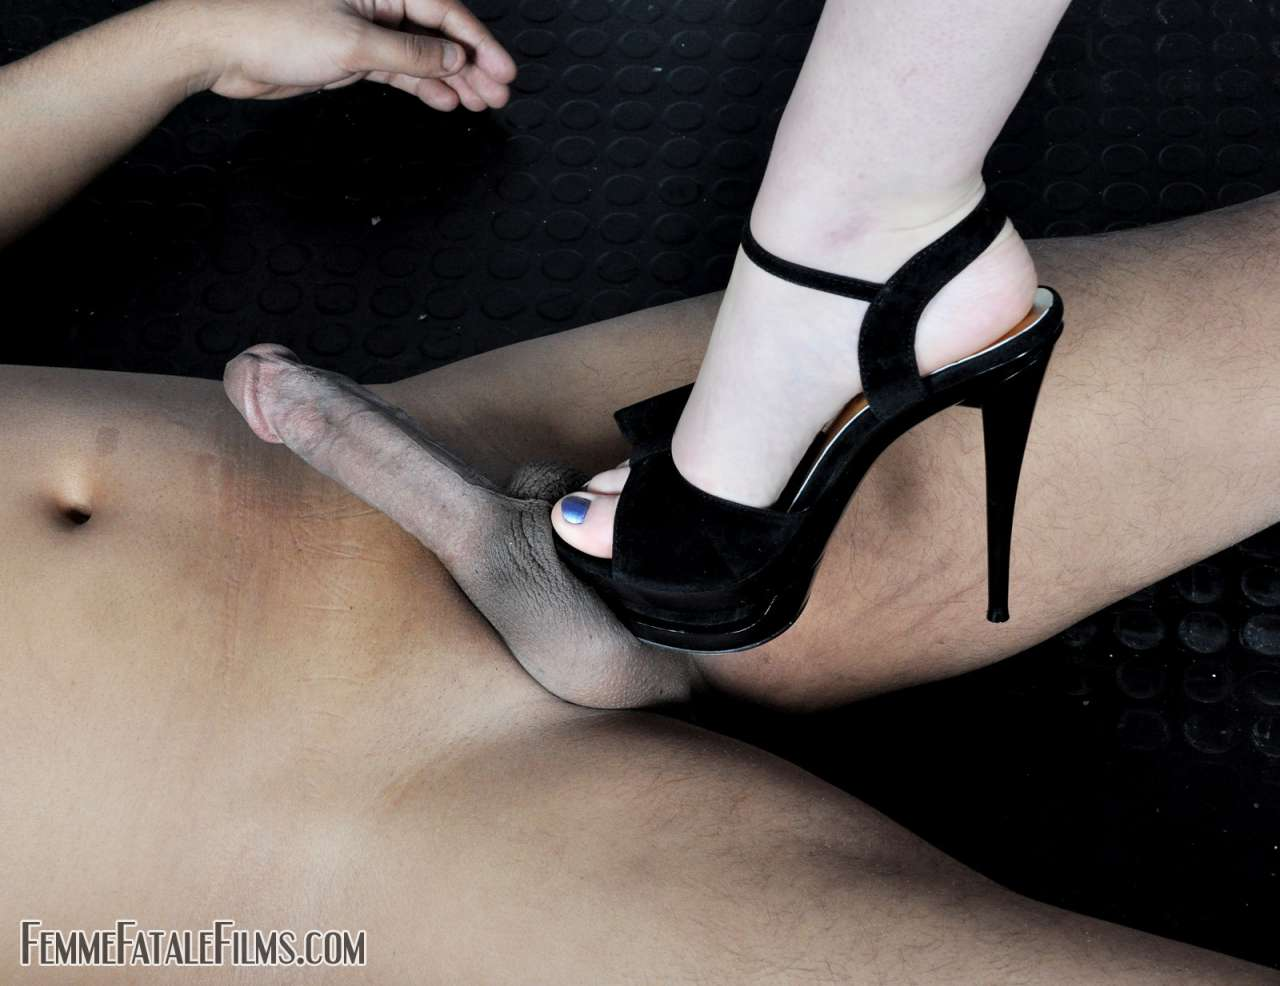 Picture #4 of Sexy fetish mates are stomping penis with high heel shoes getting slave ready for full-force balls kicking